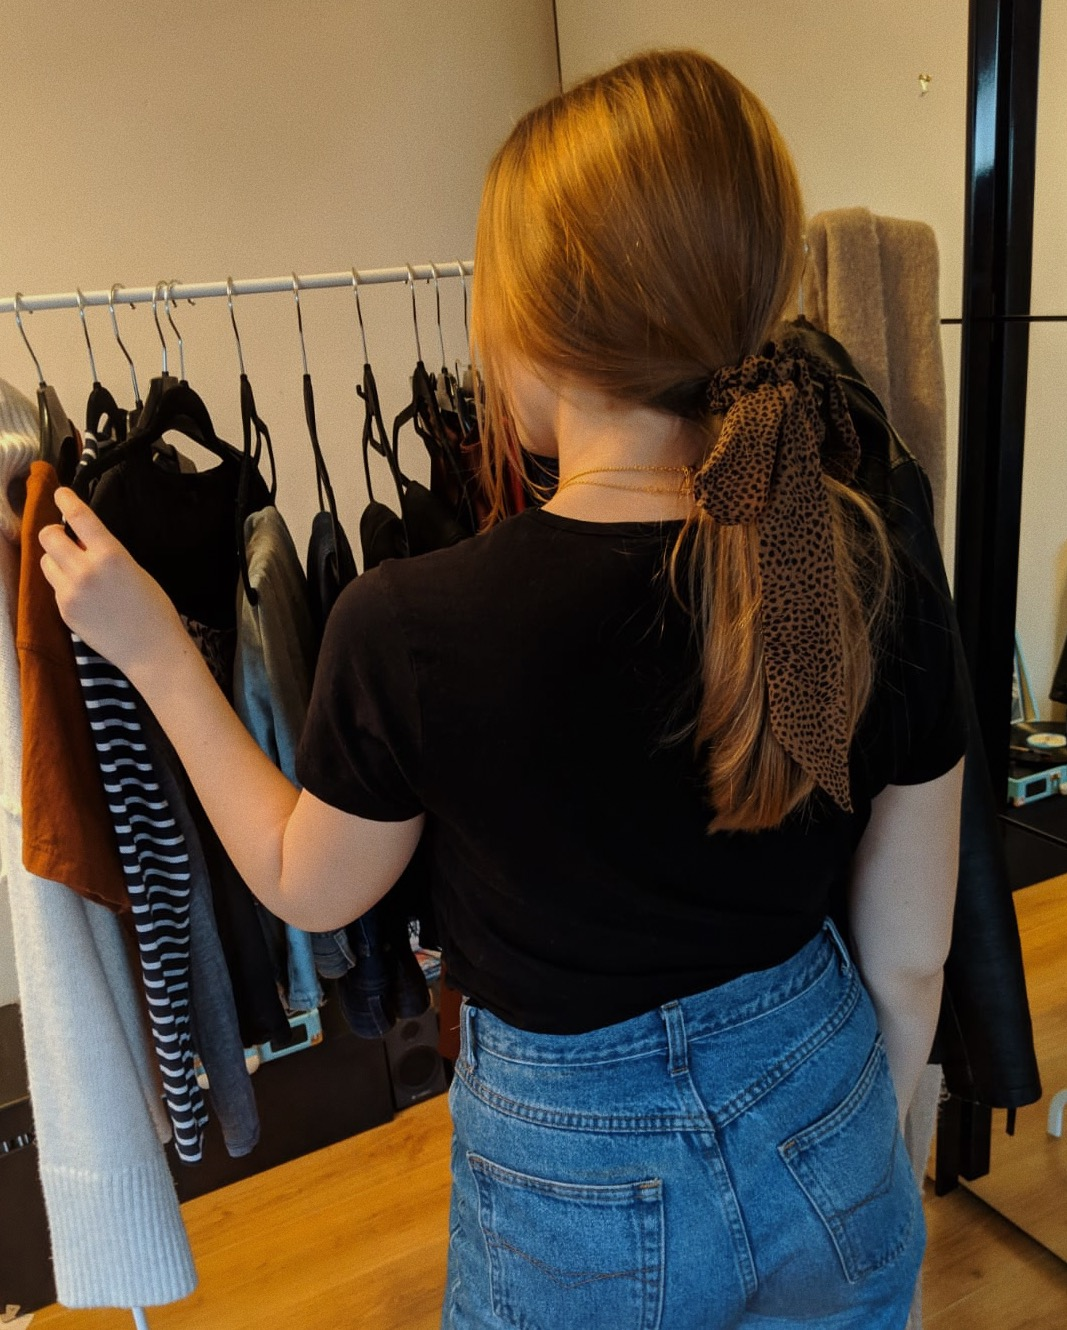 My Winter Wardrobe in Percentages | Fashion Brands Ranked